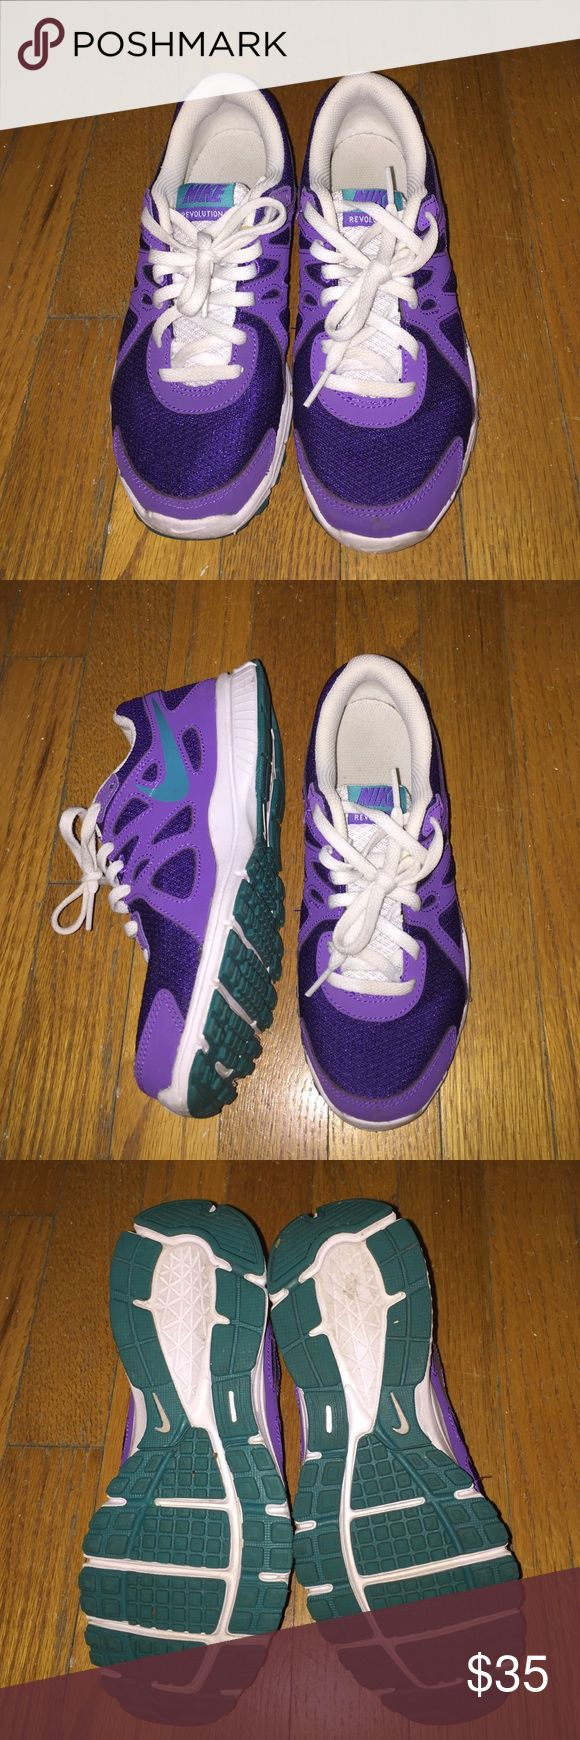 Nike revolution 2 running sneaker Adorable purple and teal running sneakers. I wore them twice. I threw out the original box (for space) Nike Shoes Sneakers